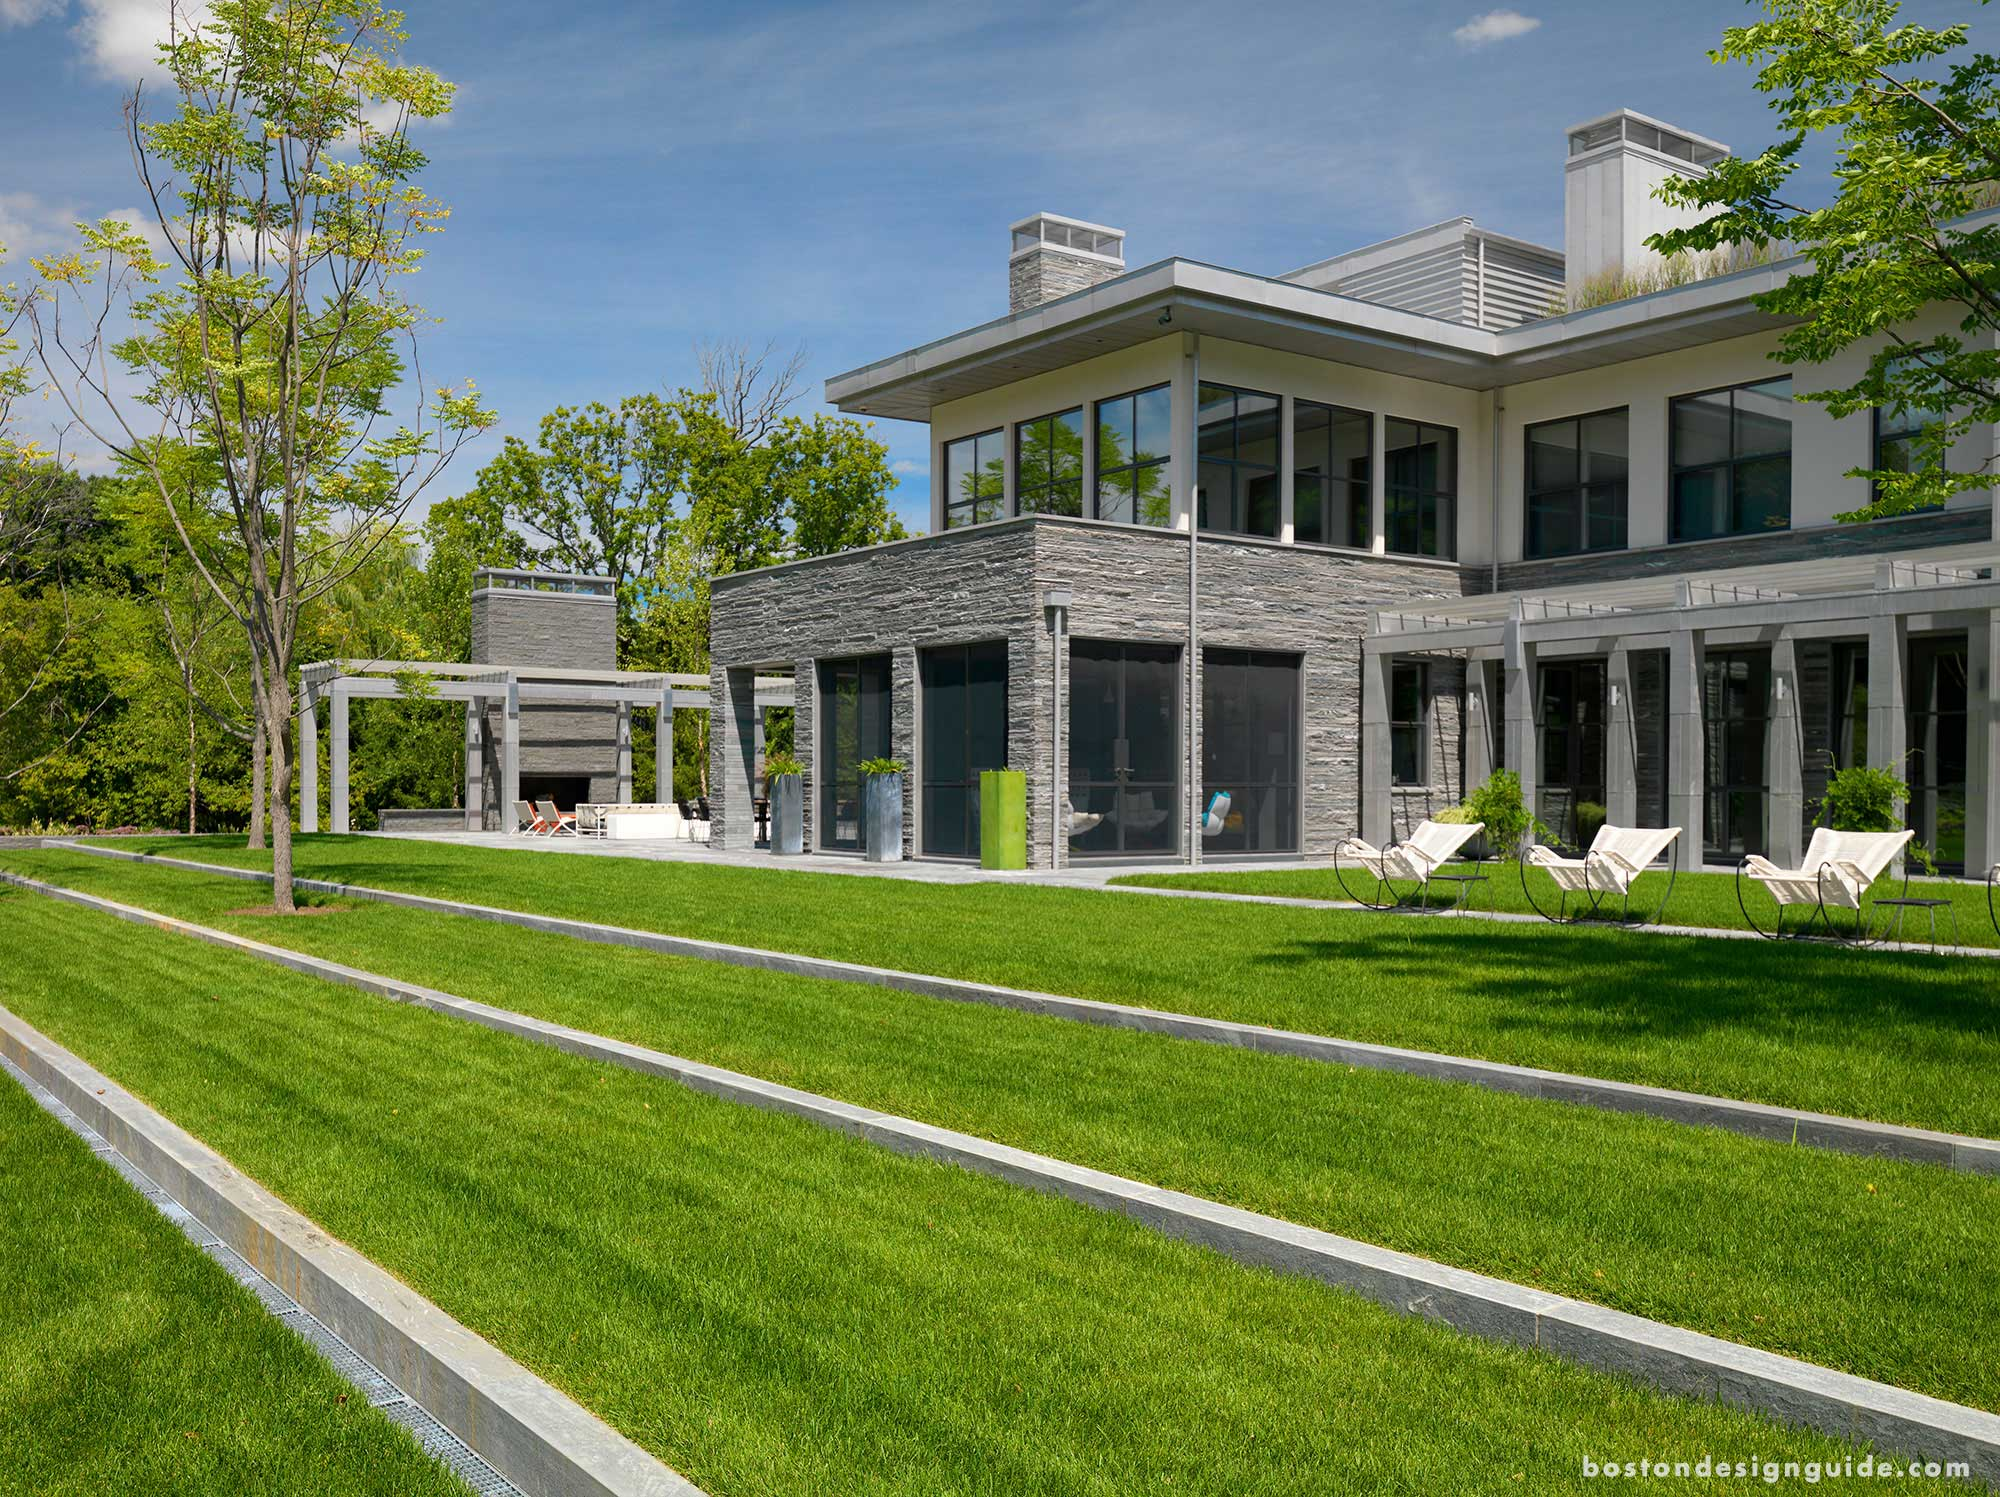 Landscape Contractor: R.P. Marzilli & Company; Builder: Thoughtforms; Architect: Adolfo Perez Architect; Home Automation: Creative Systems; Photography: Richard Mandelkorn